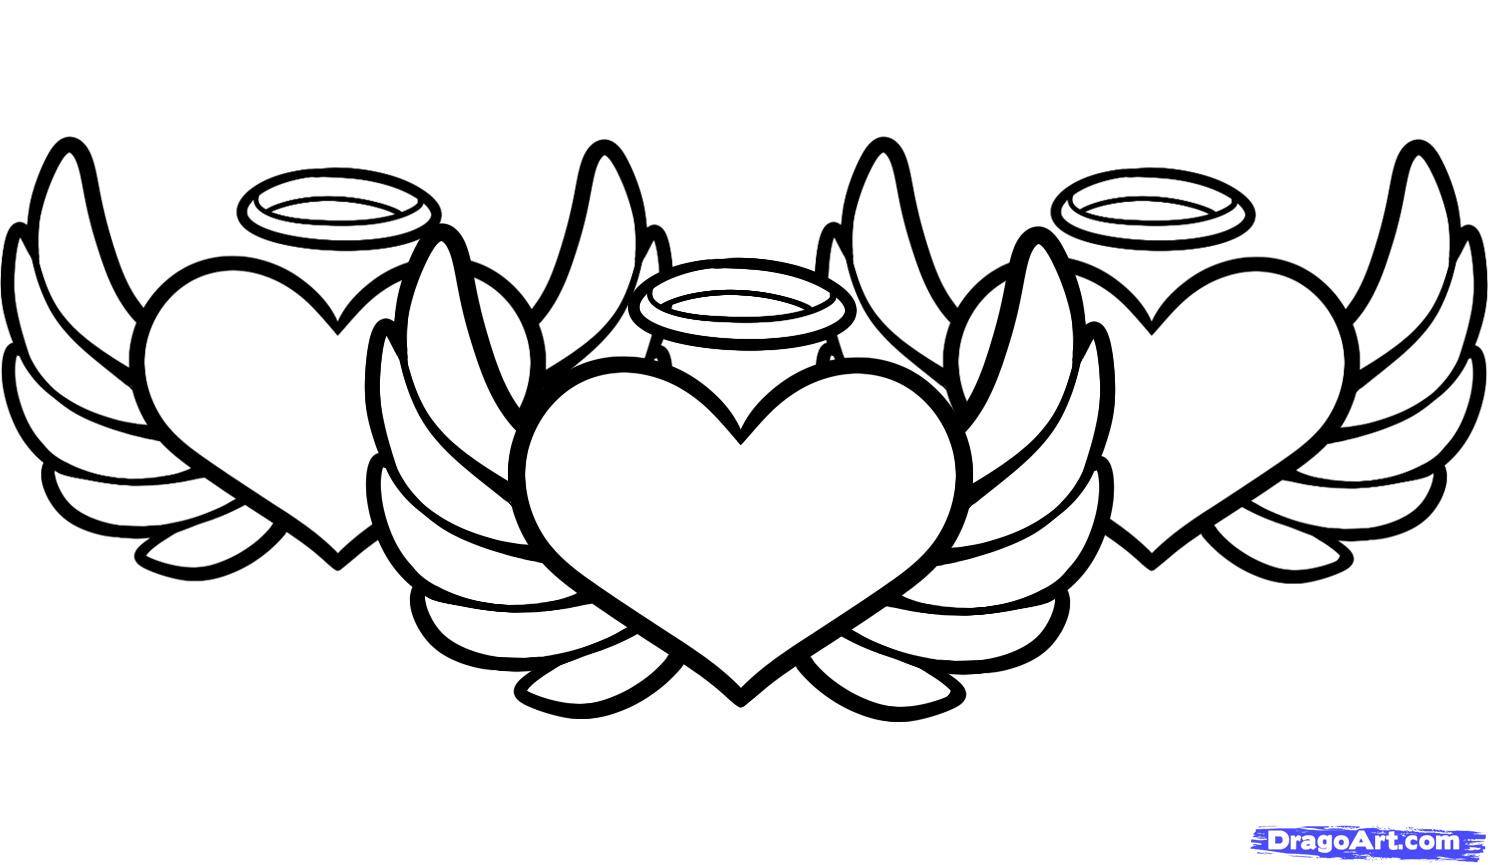 heart drawing pages at getdrawings com free for personal use heart